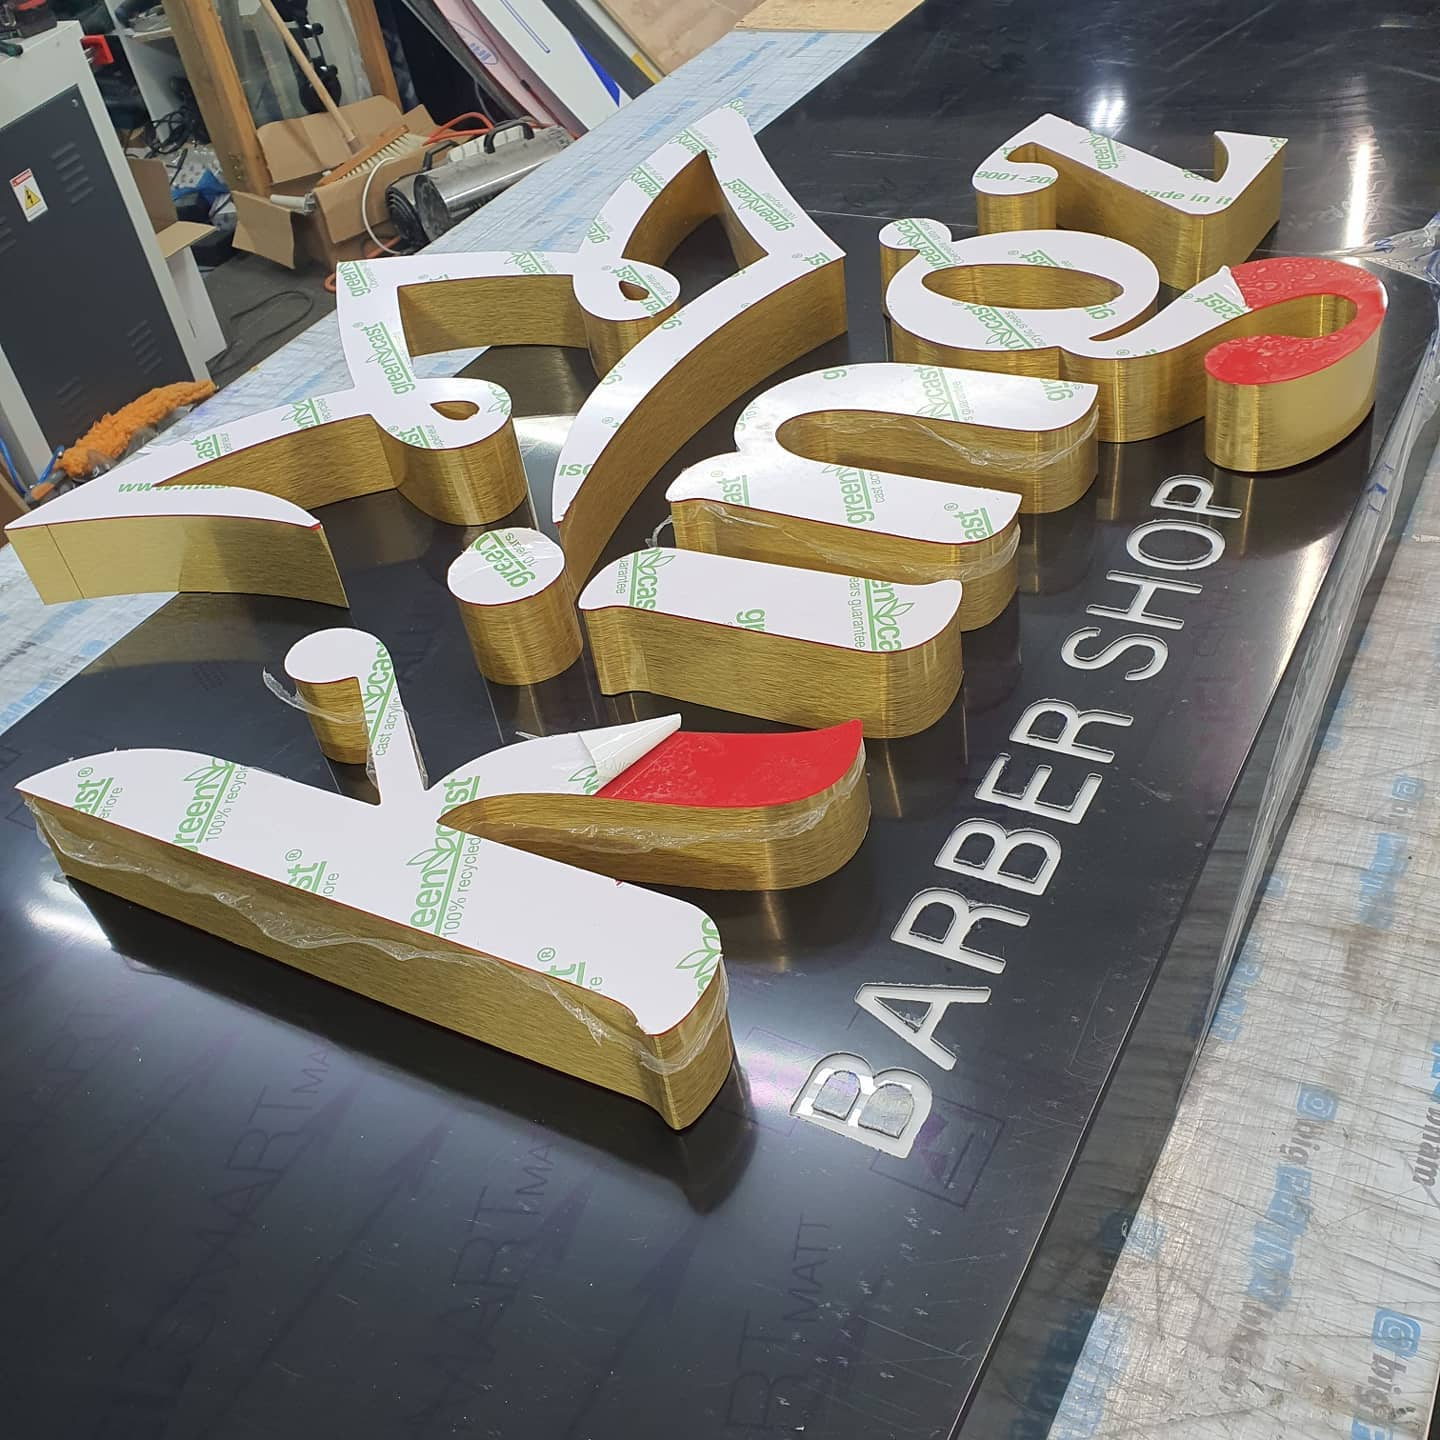 Signboard for @kingz_barber1 What do you think? To place an order for a light up 3D signboard, If at all possible PLEASE whatsapp me on 07702153393